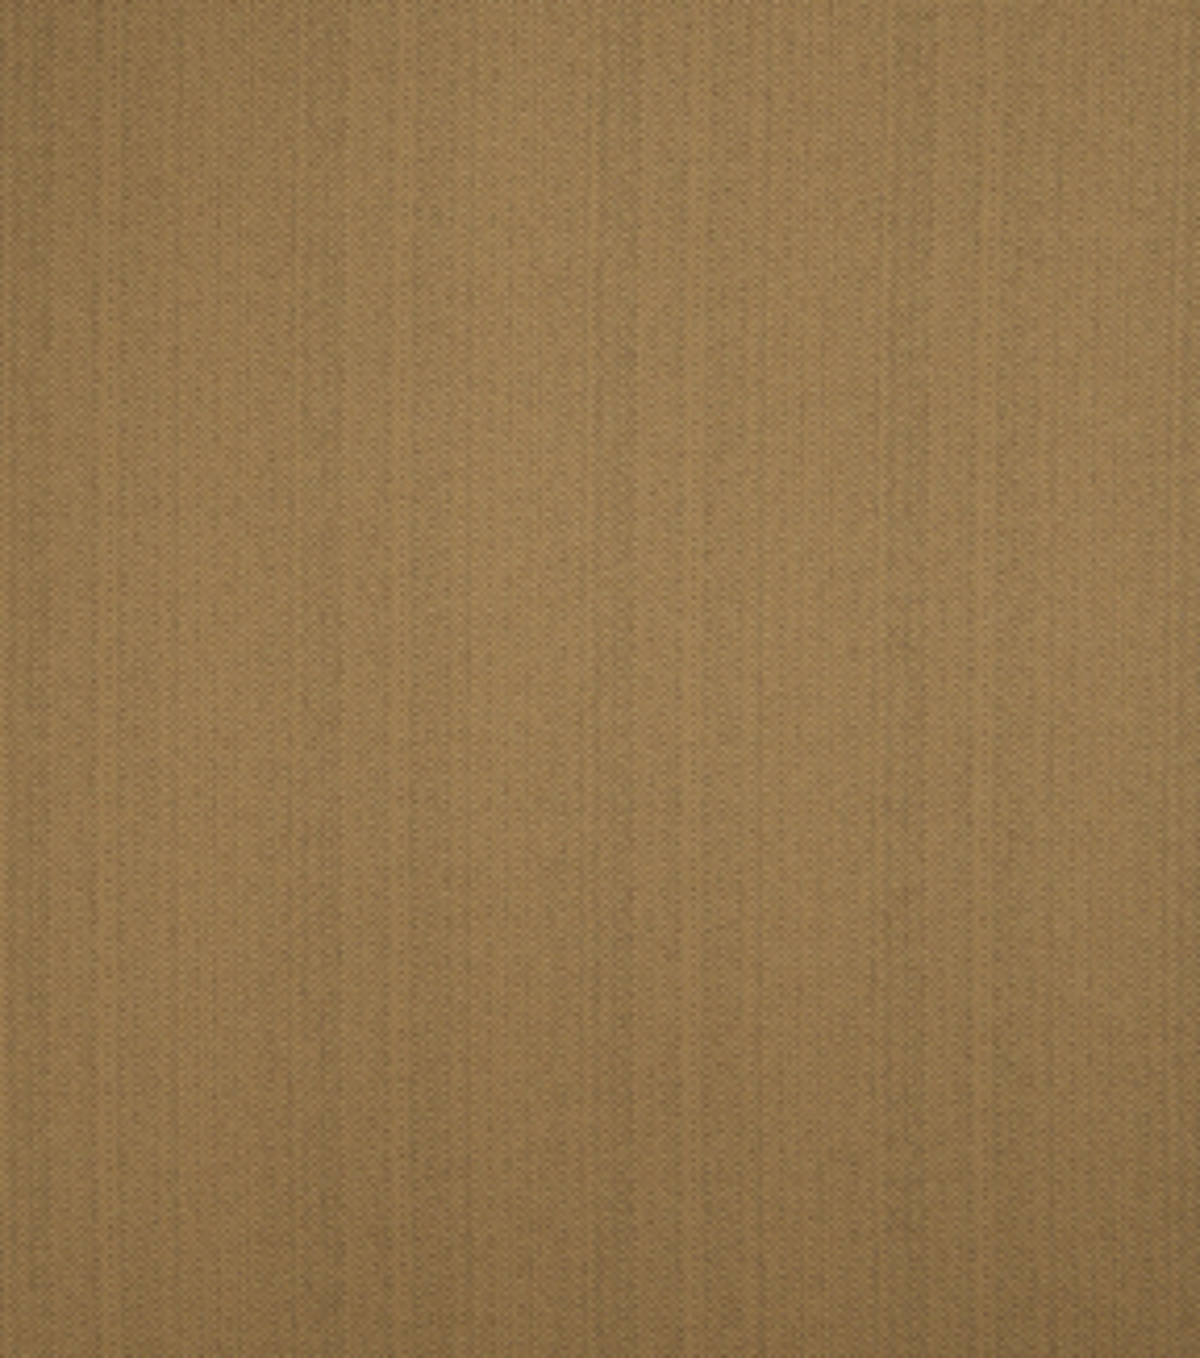 Home Decor 8\u0022x8\u0022 Fabric Swatch-Bella Dura Pure Camel